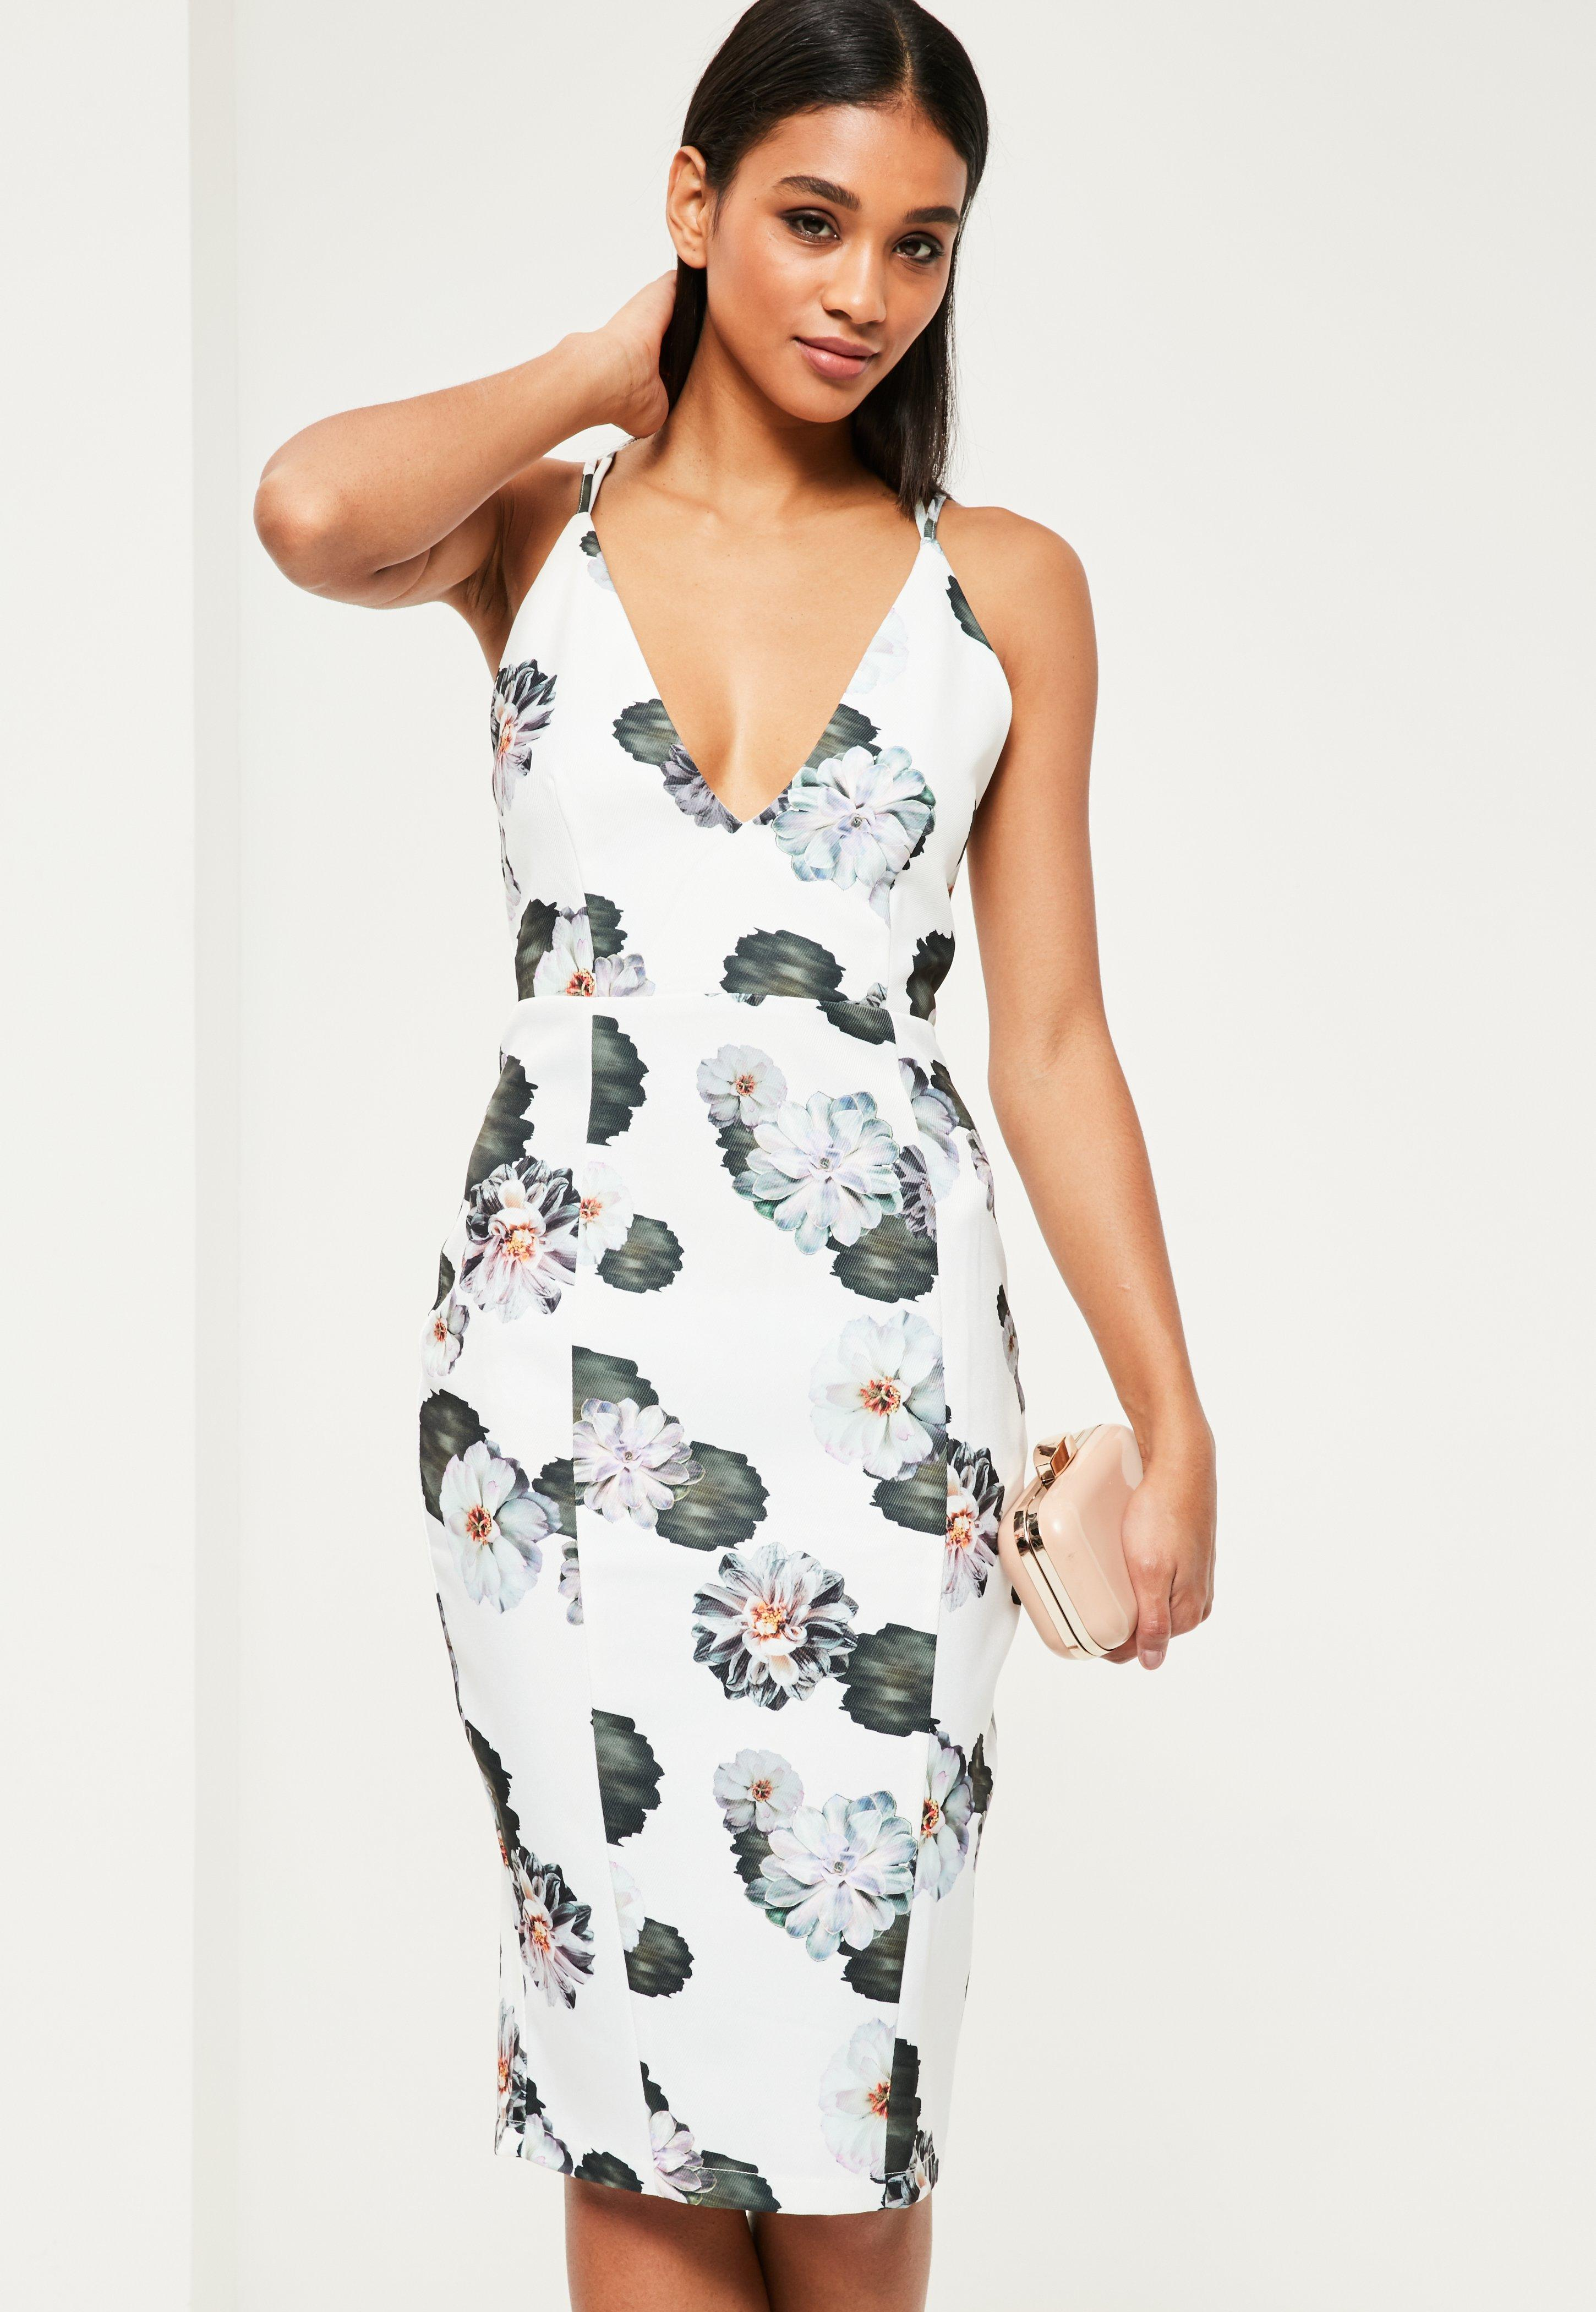 Missguided Lace Floral Midi Dress Clearance Best Store To Get lvFv6r8d